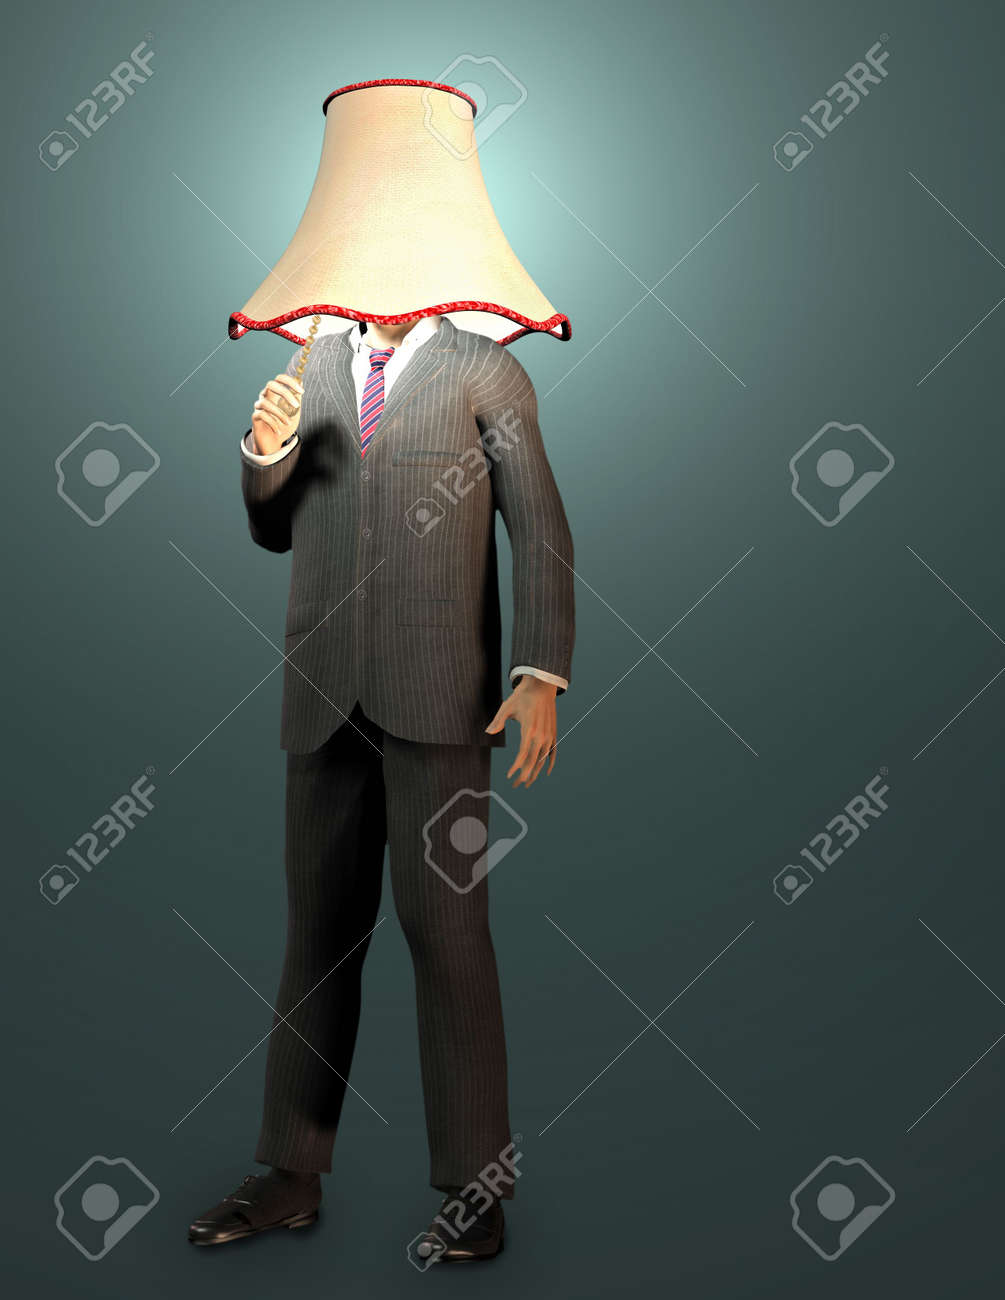 Bussinessman with lamp shade and pull switch Stock Photo - 5548378